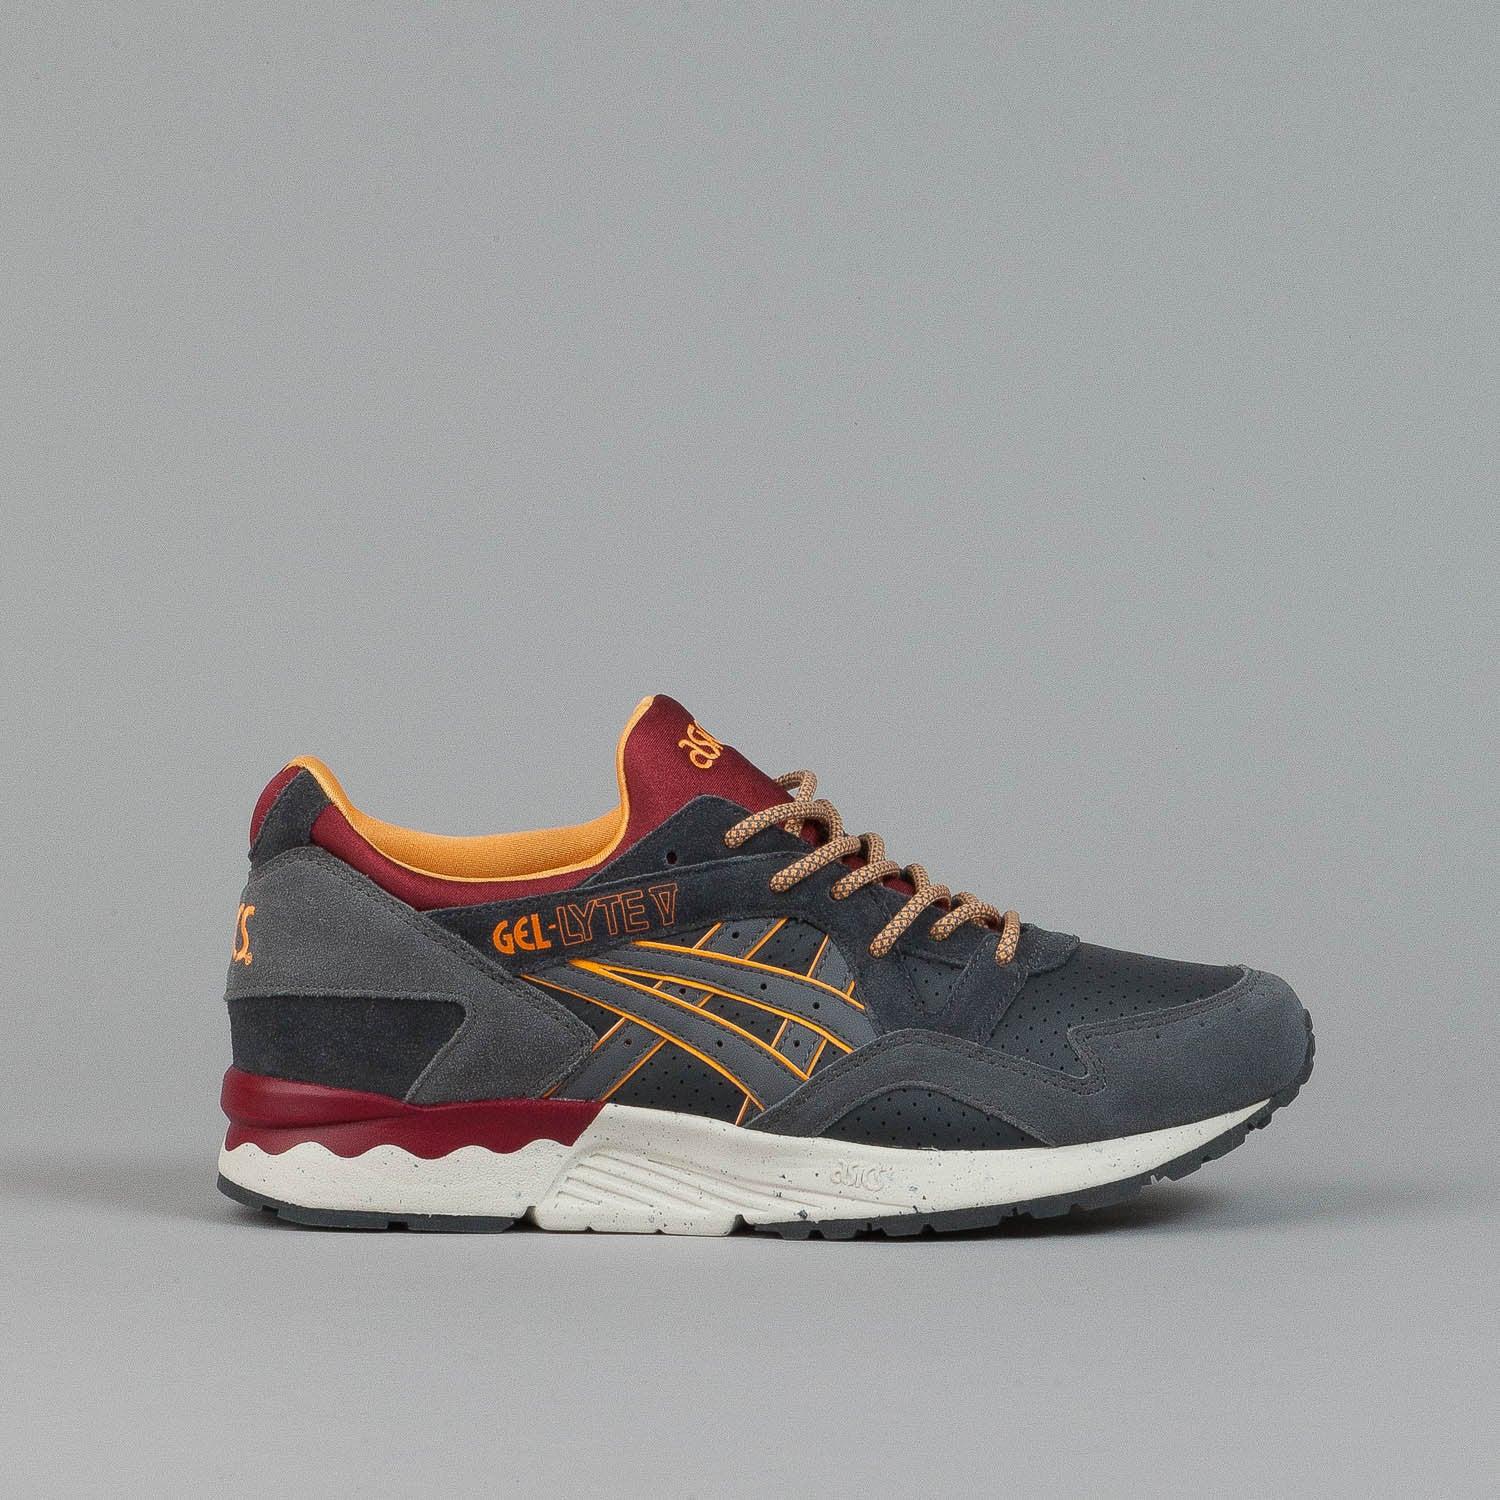 Asics Gel Lyte V Shoes 'Outdoor'